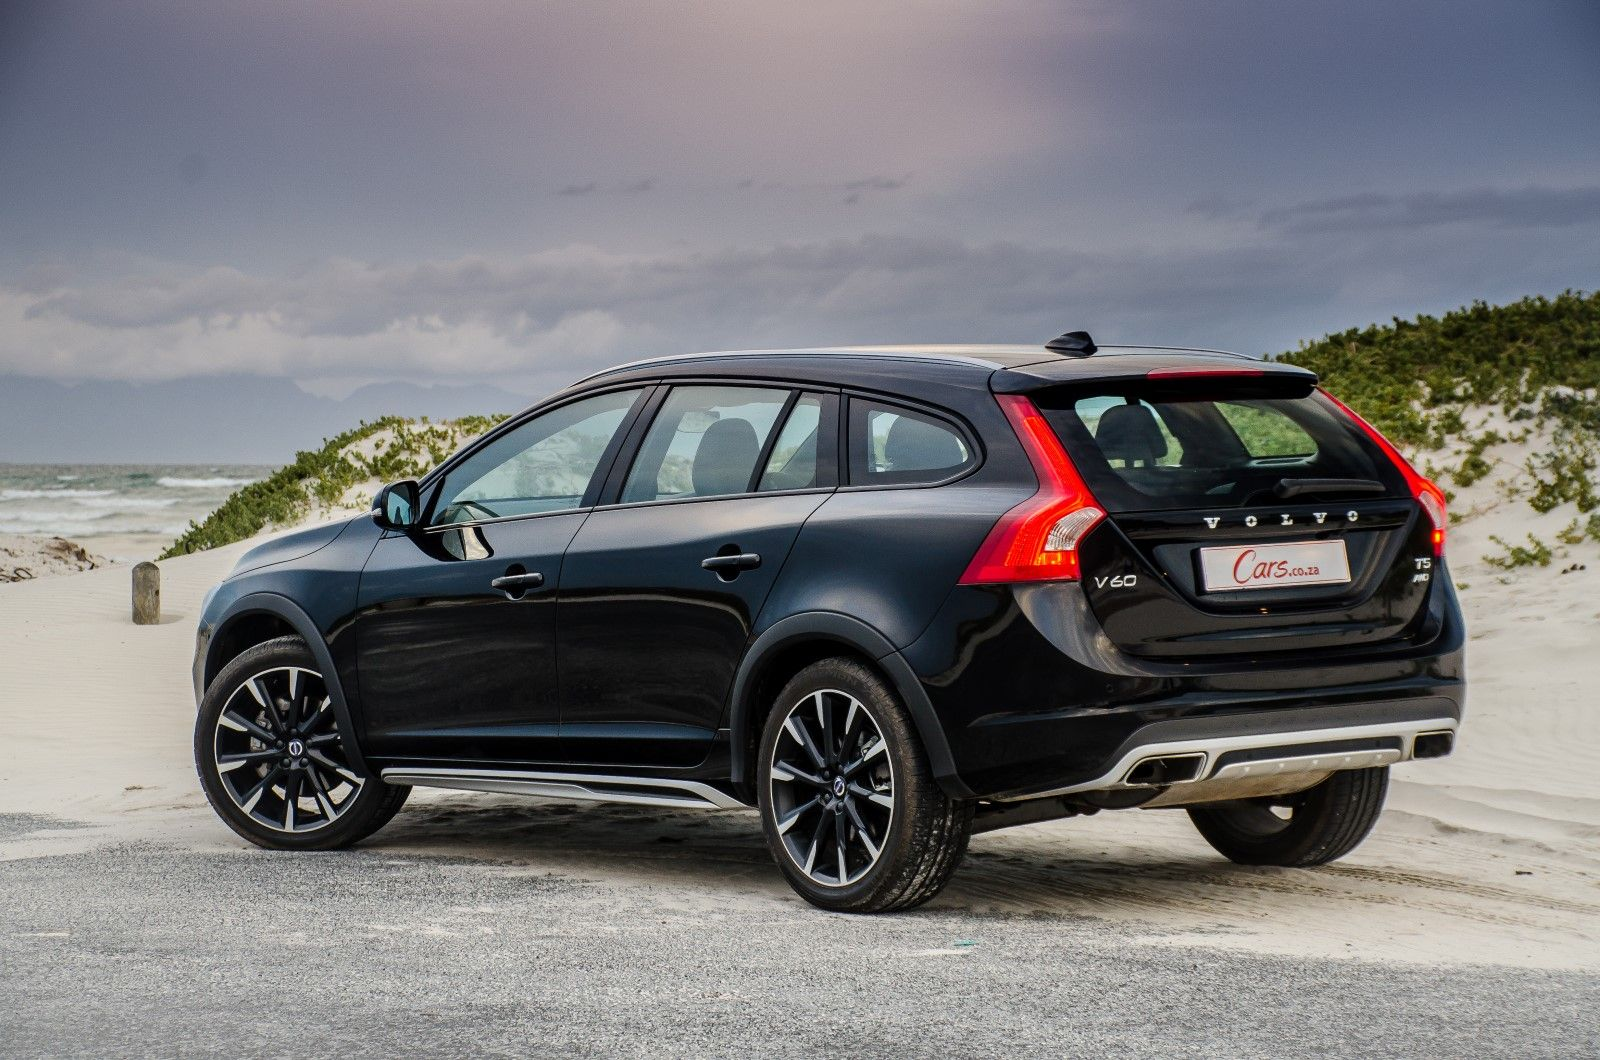 We drive the volvo v60 cross country t5 a raised up all